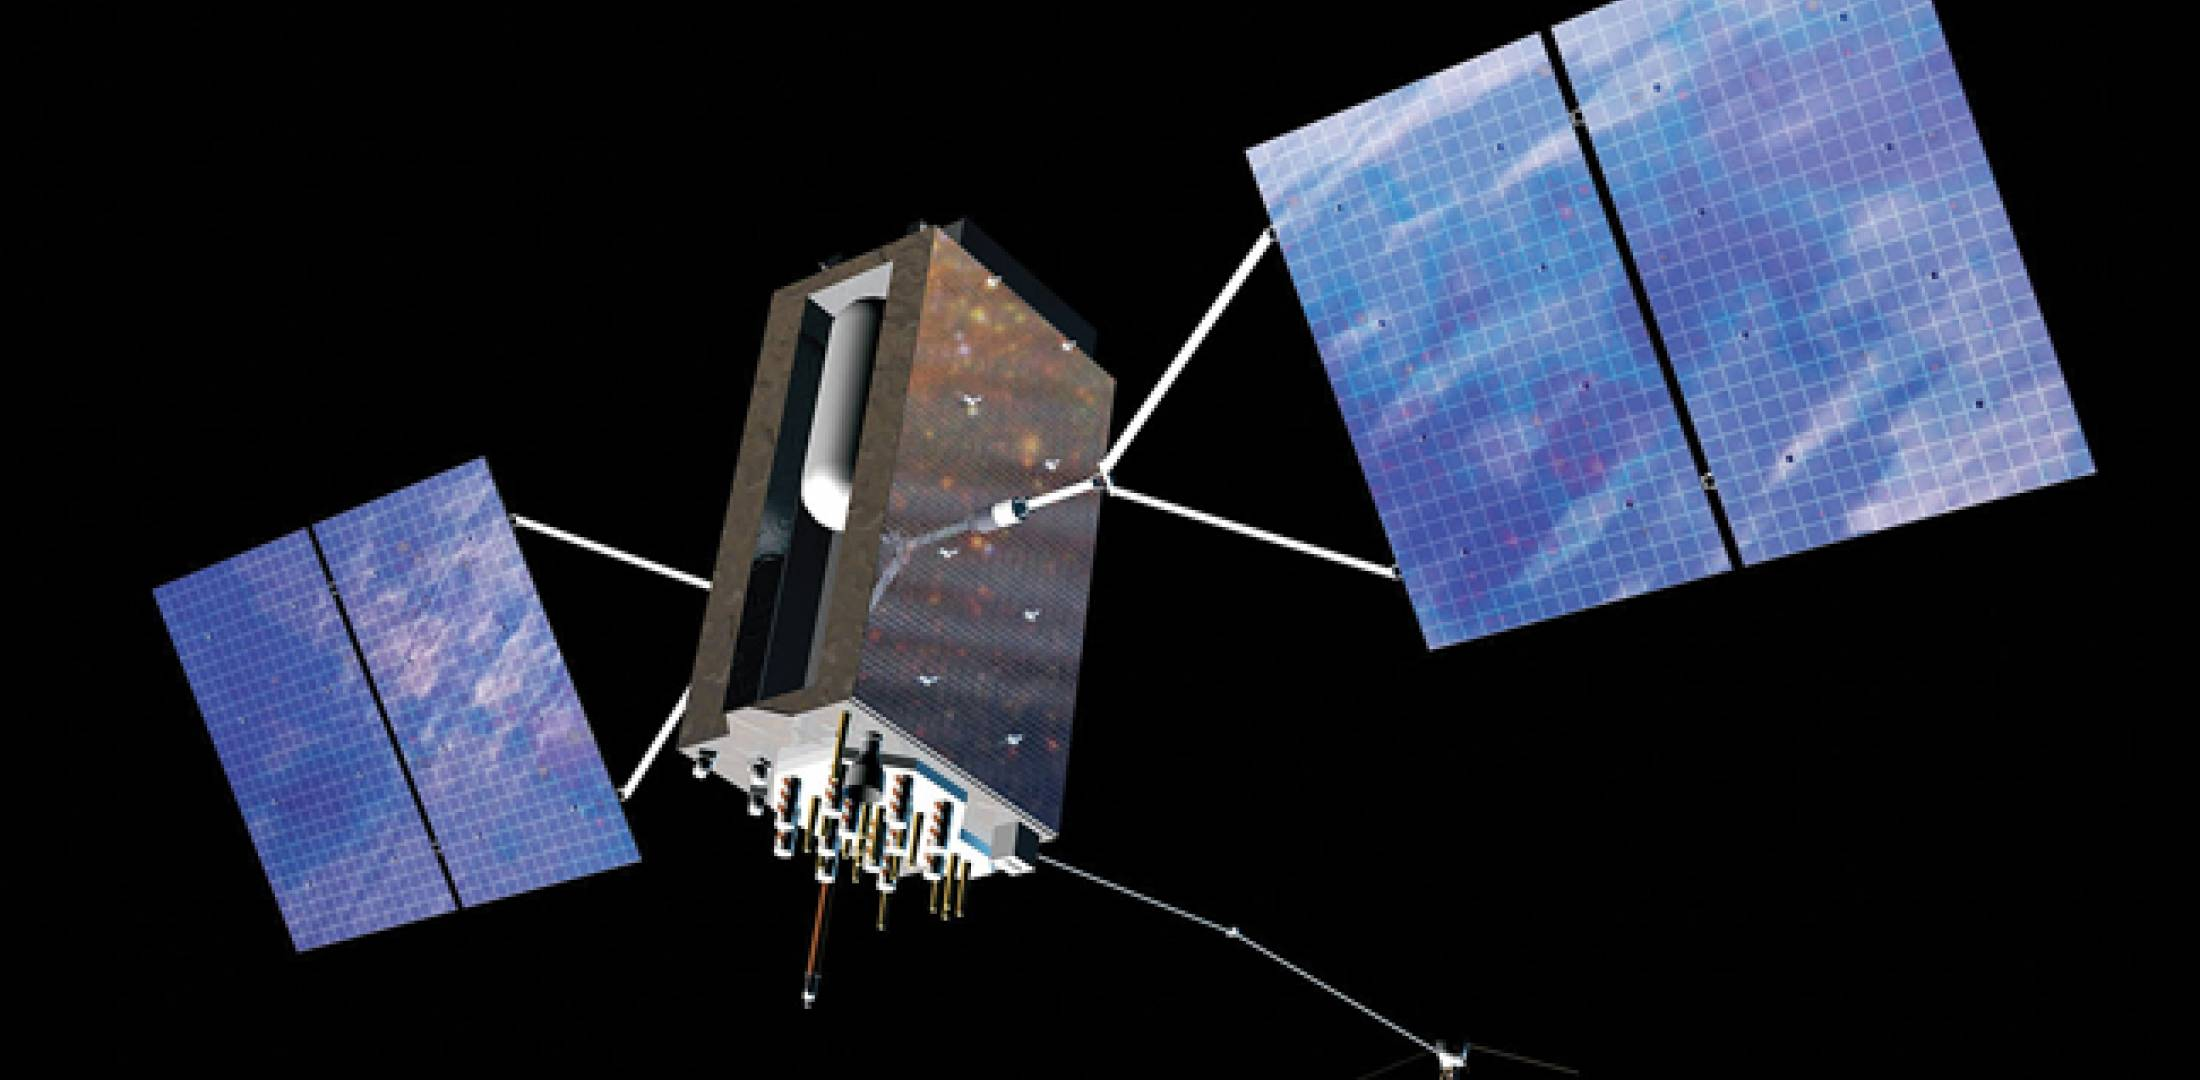 With launch of the first next-generation GPS III satellites planned for 2016, the DOD is looking for ways to reduce costs in line with today's budget realities while ensuring the utility airspace users expect in the future.